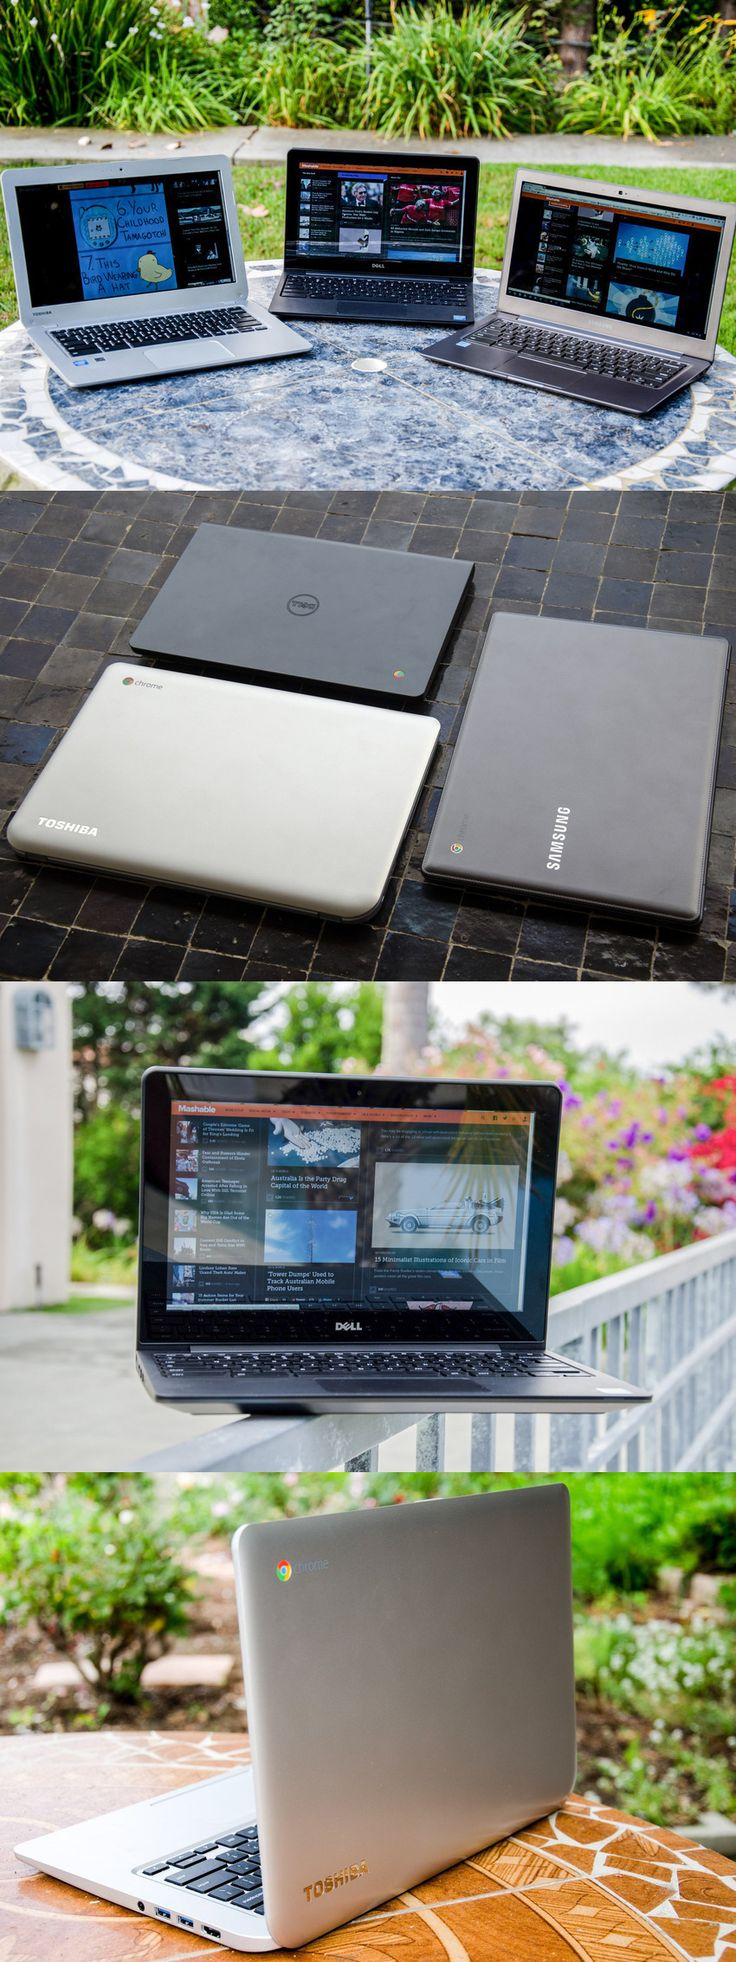 The Dell Chromebook 11, the Samsung Chromebook 2, and the Toshiba Chromebook.